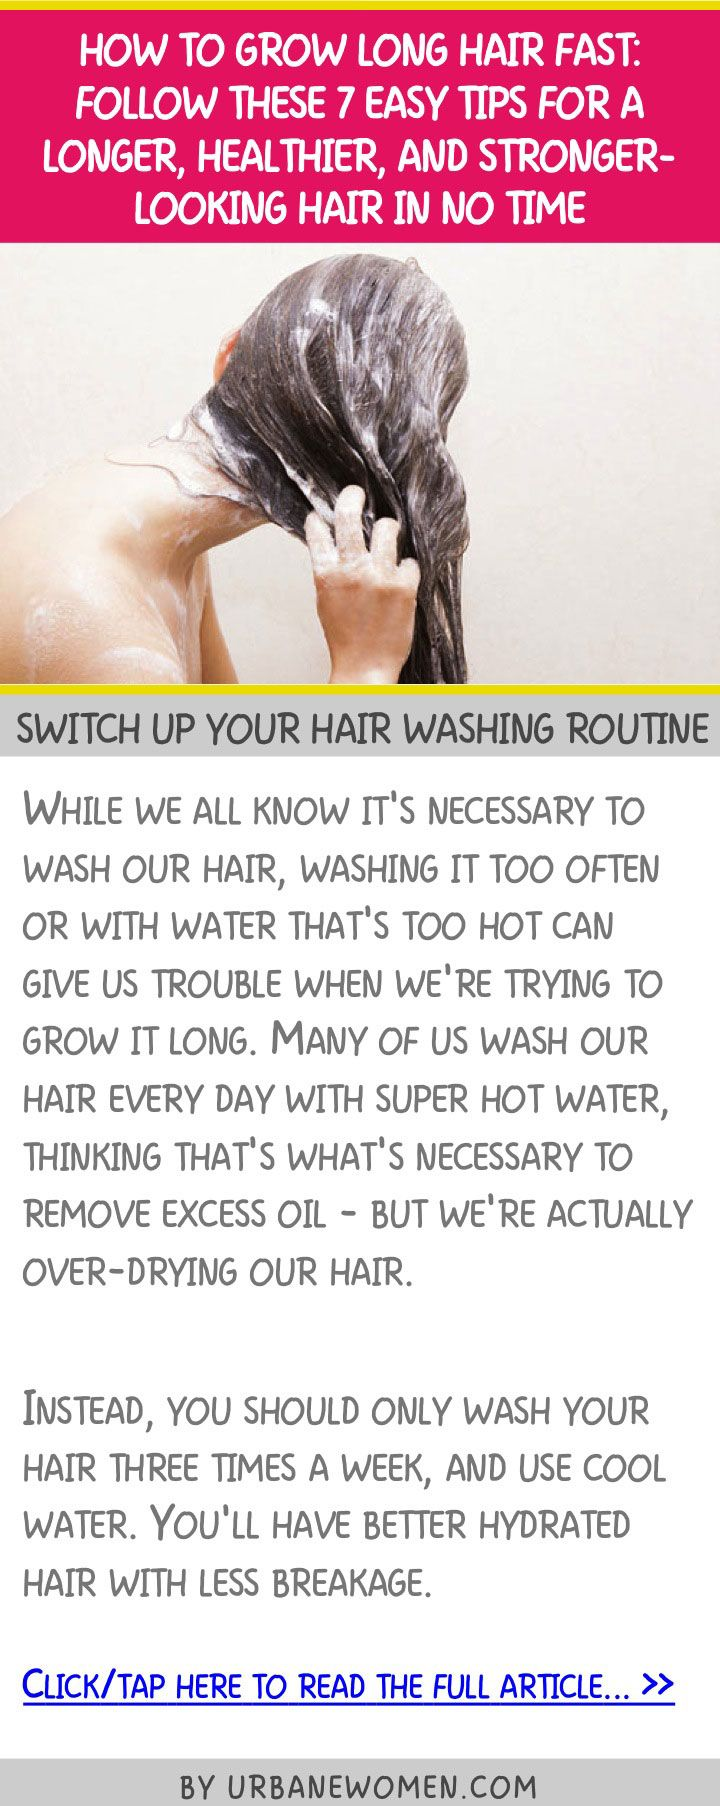 How to grow long hair fast: Follow these 7 easy tips for a longer, healthier & stronger-looking hair in no time! - Switch up your hair washing routine